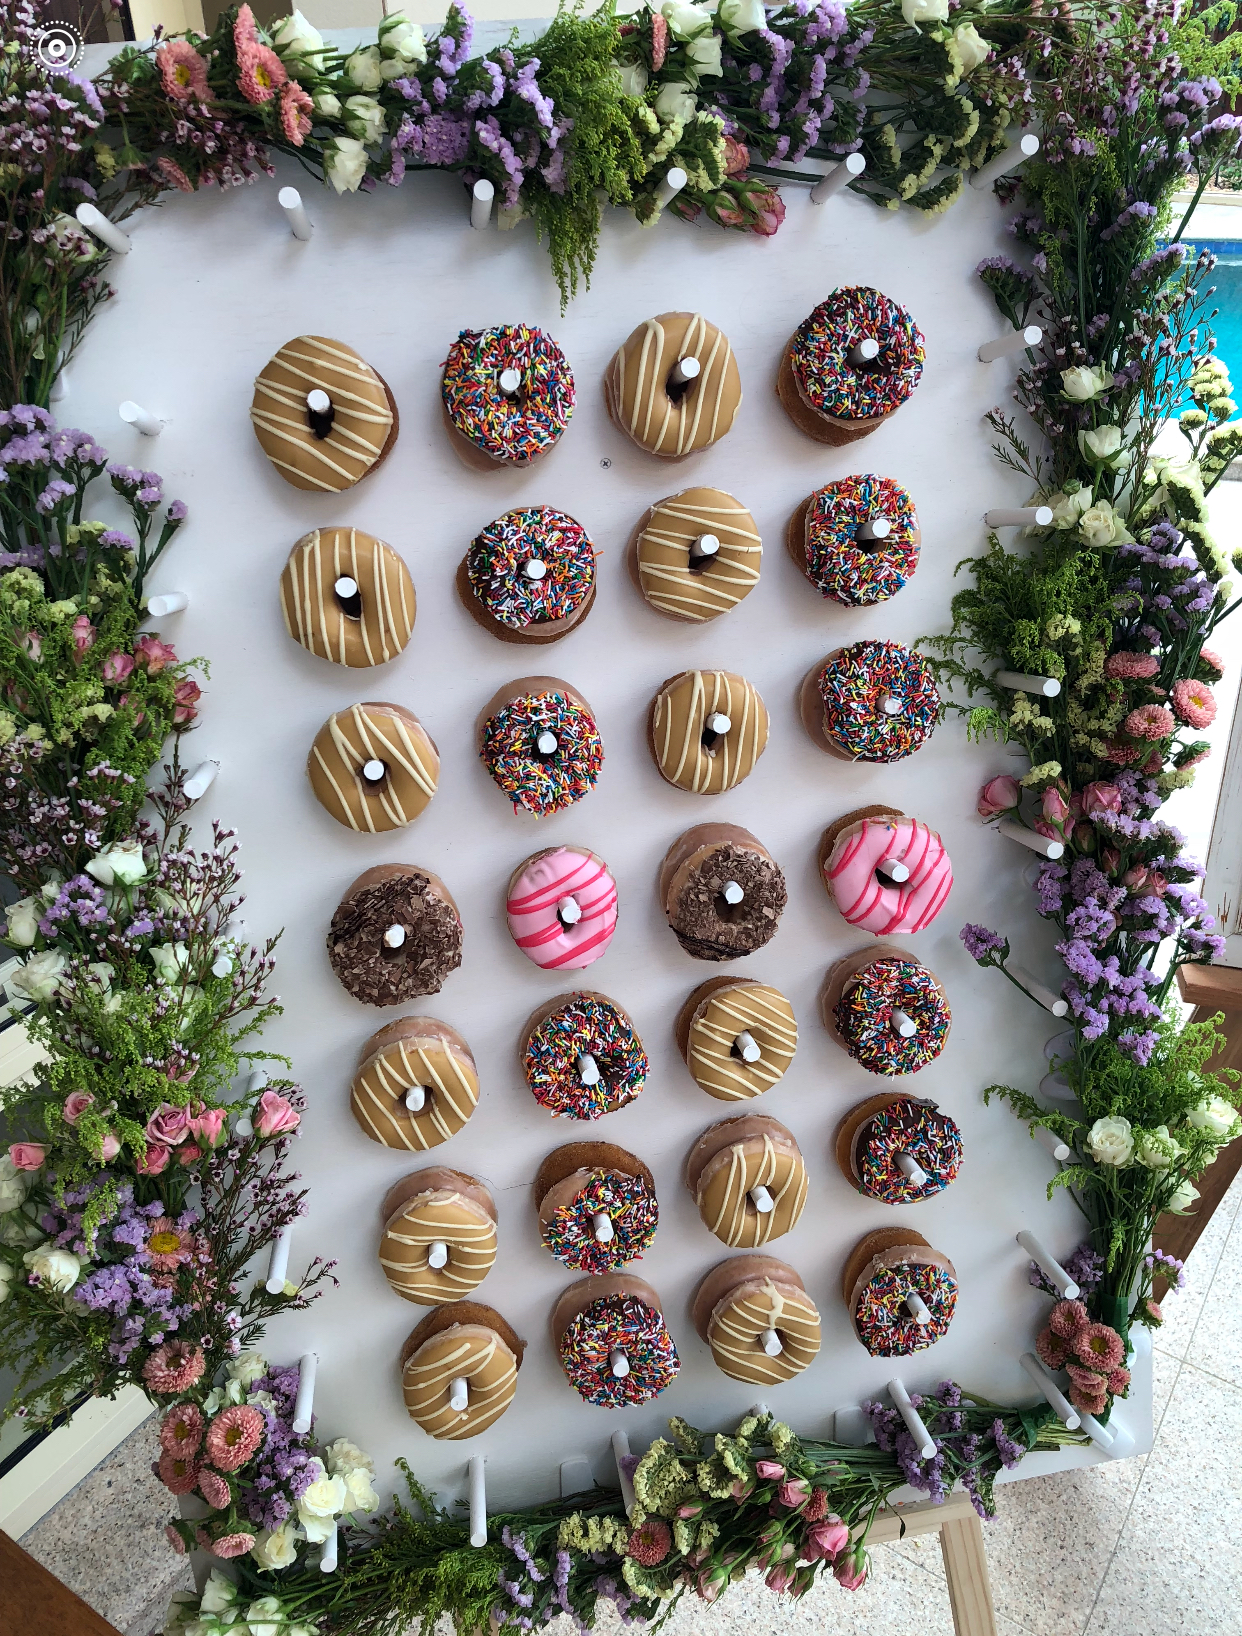 Donut wall with flowers